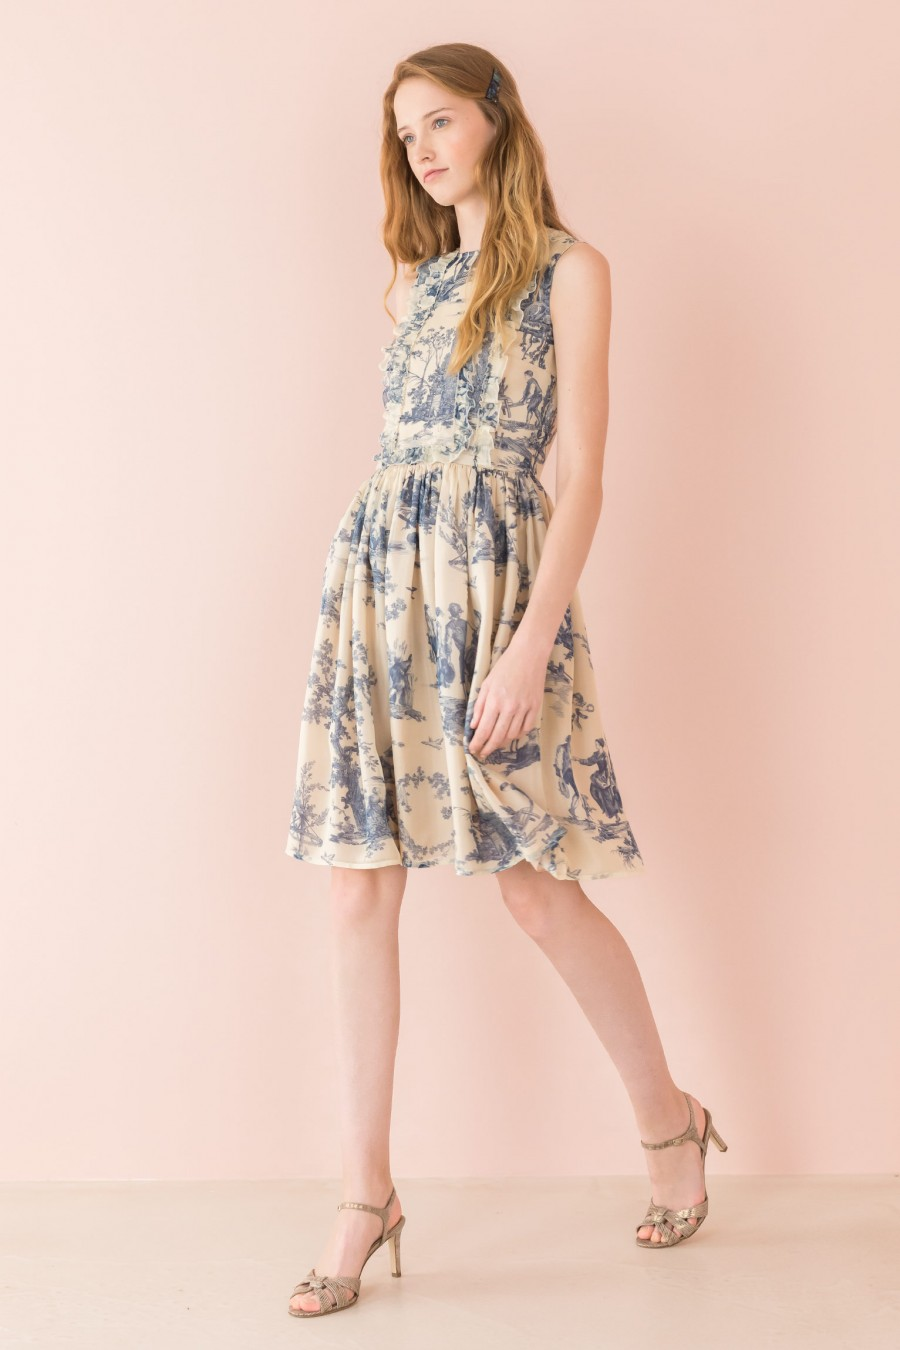 organdie blue dress toile de jouy